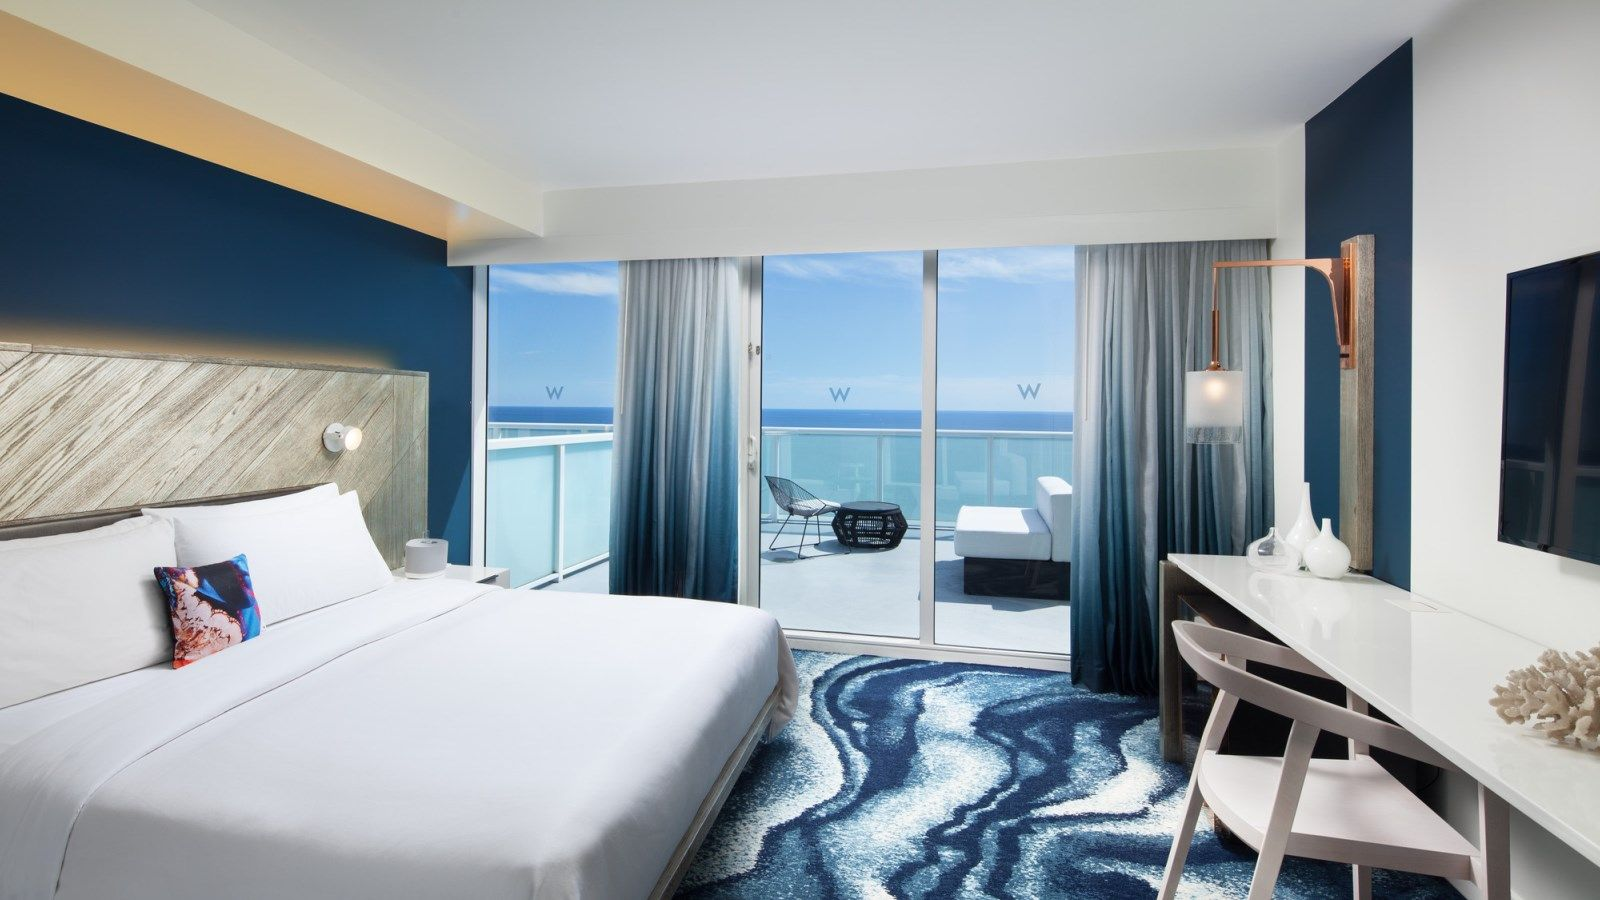 Luxury Hotels Ft Lauderdale Florida